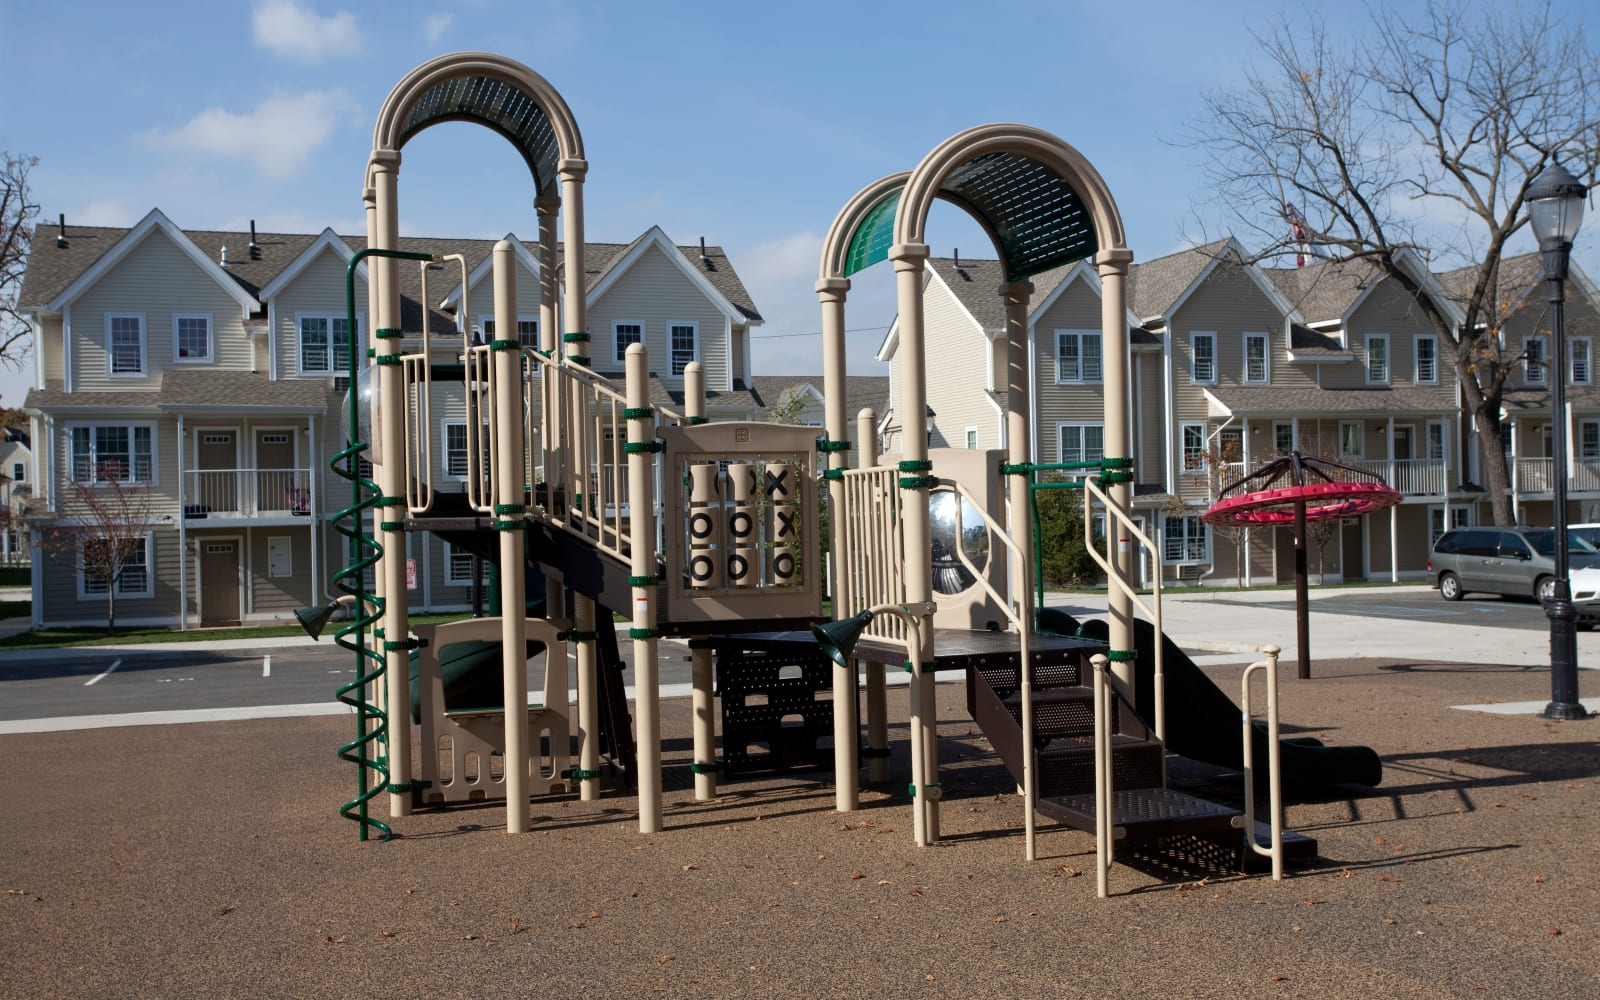 Playground at Markham Gardens in Staten Island, New York